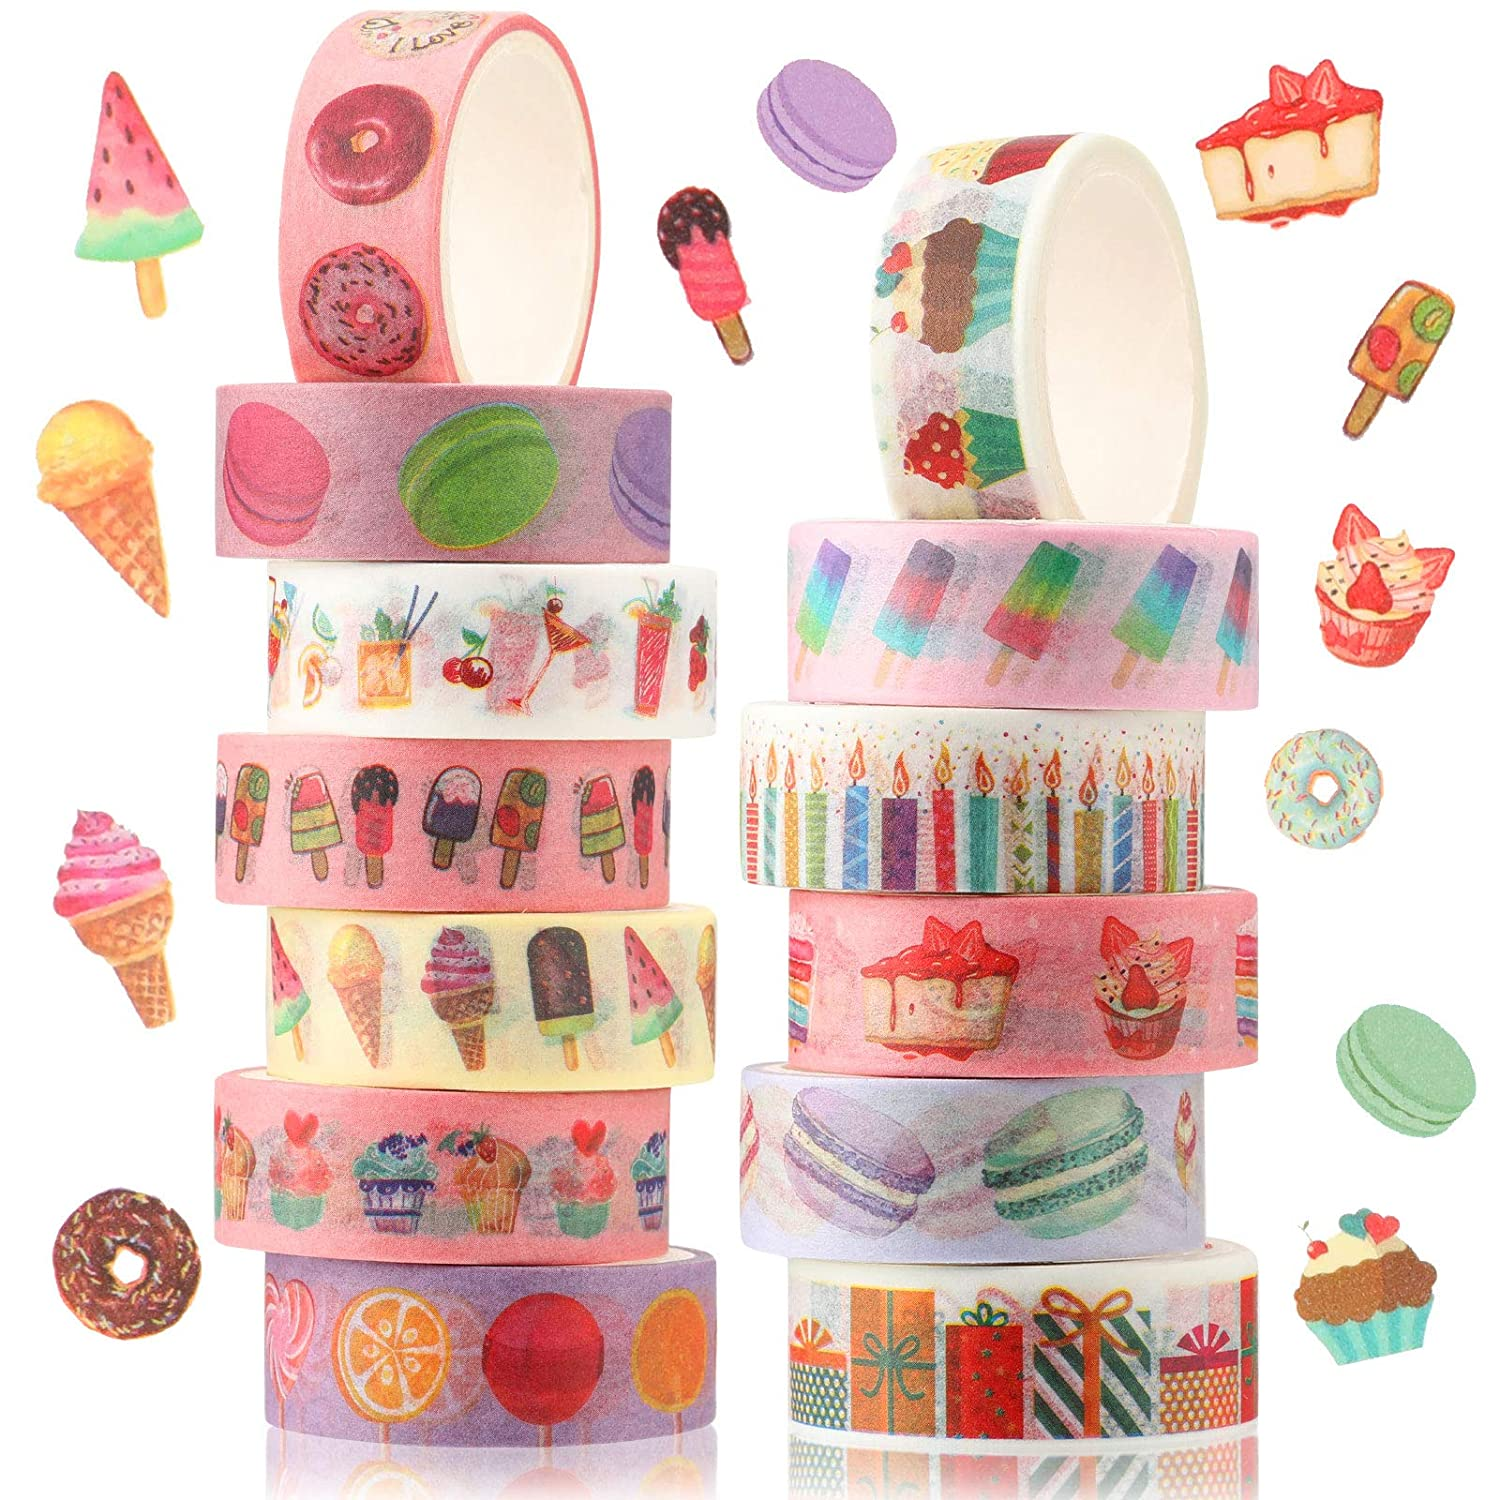 12 Rolls Dessert Ice Cream Donuts Cartoon Washi Masking Tape Fragrance Washi Tape DIY Decorative Tapes Wrapping Craft Pattern Tapes for Arts, DIY Crafts, Scrapbook, Planner, Holiday Card Decorations